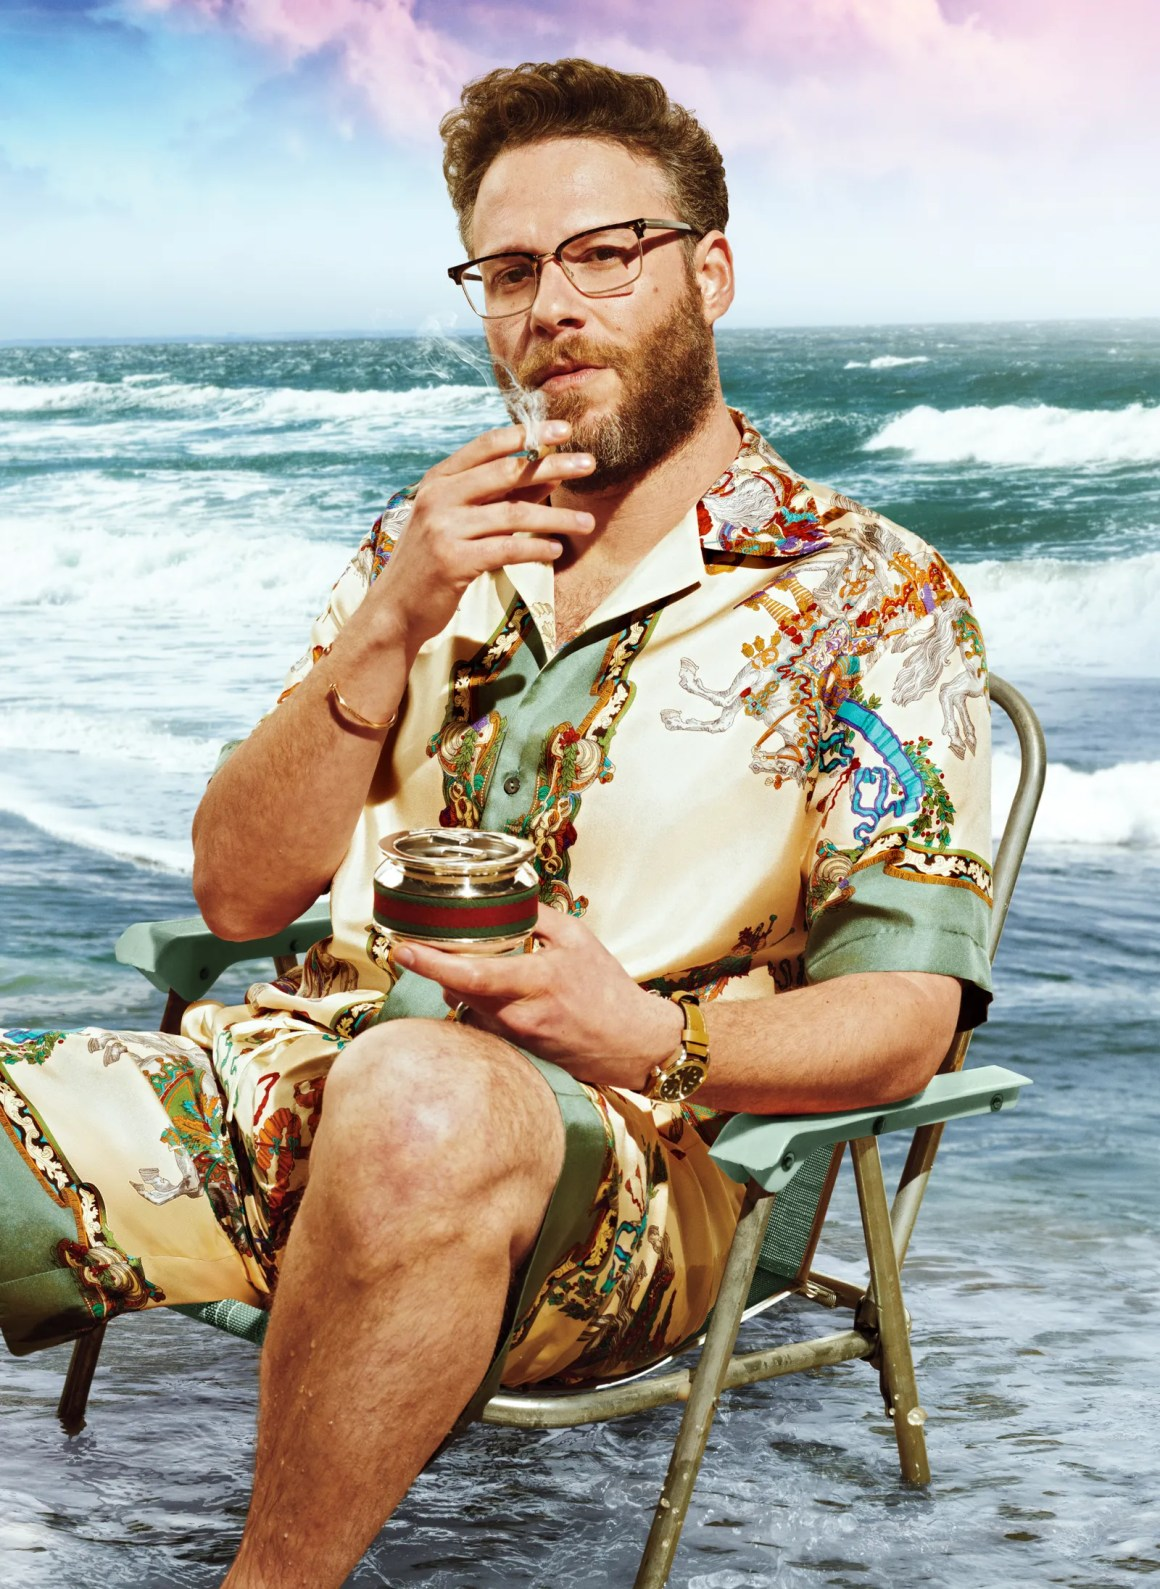 seth rogen sitting in a beach chair at the edge of the ocean smoking